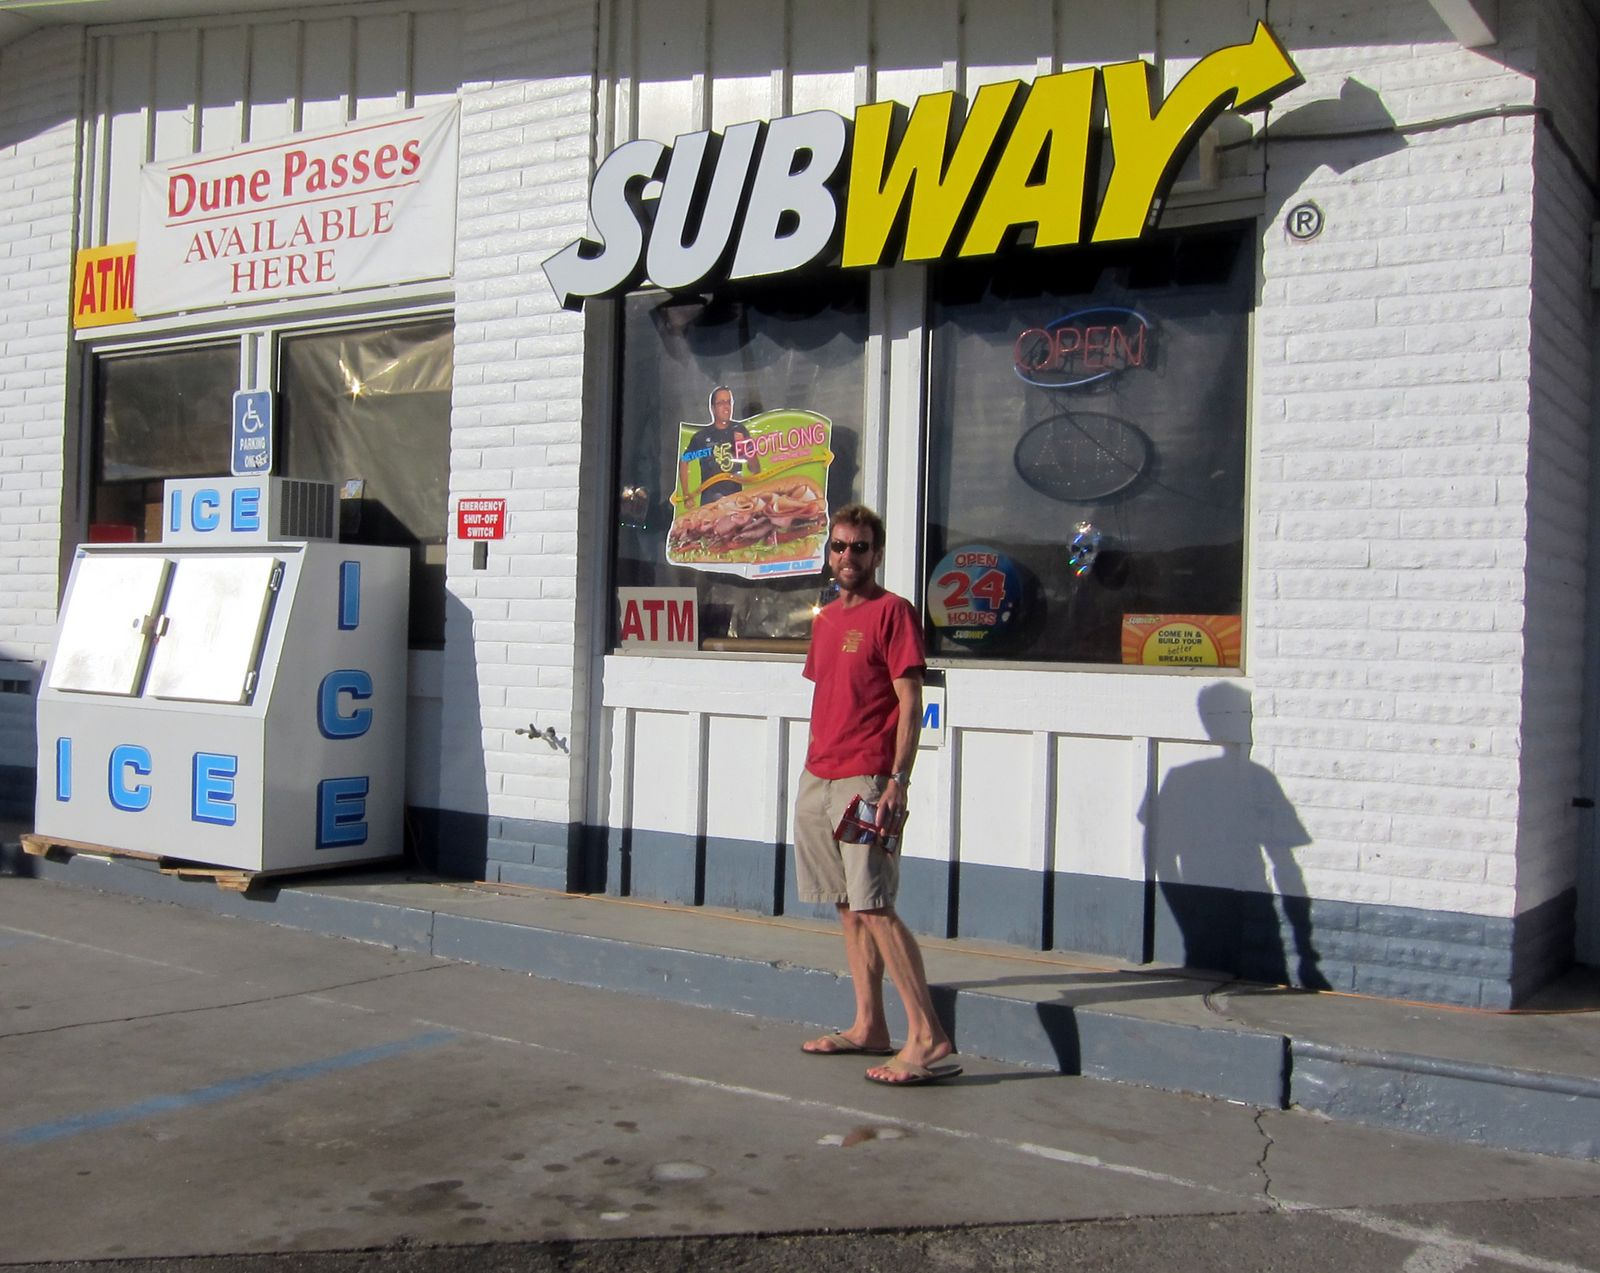 Our traditional stop at the Subway in Jacumba